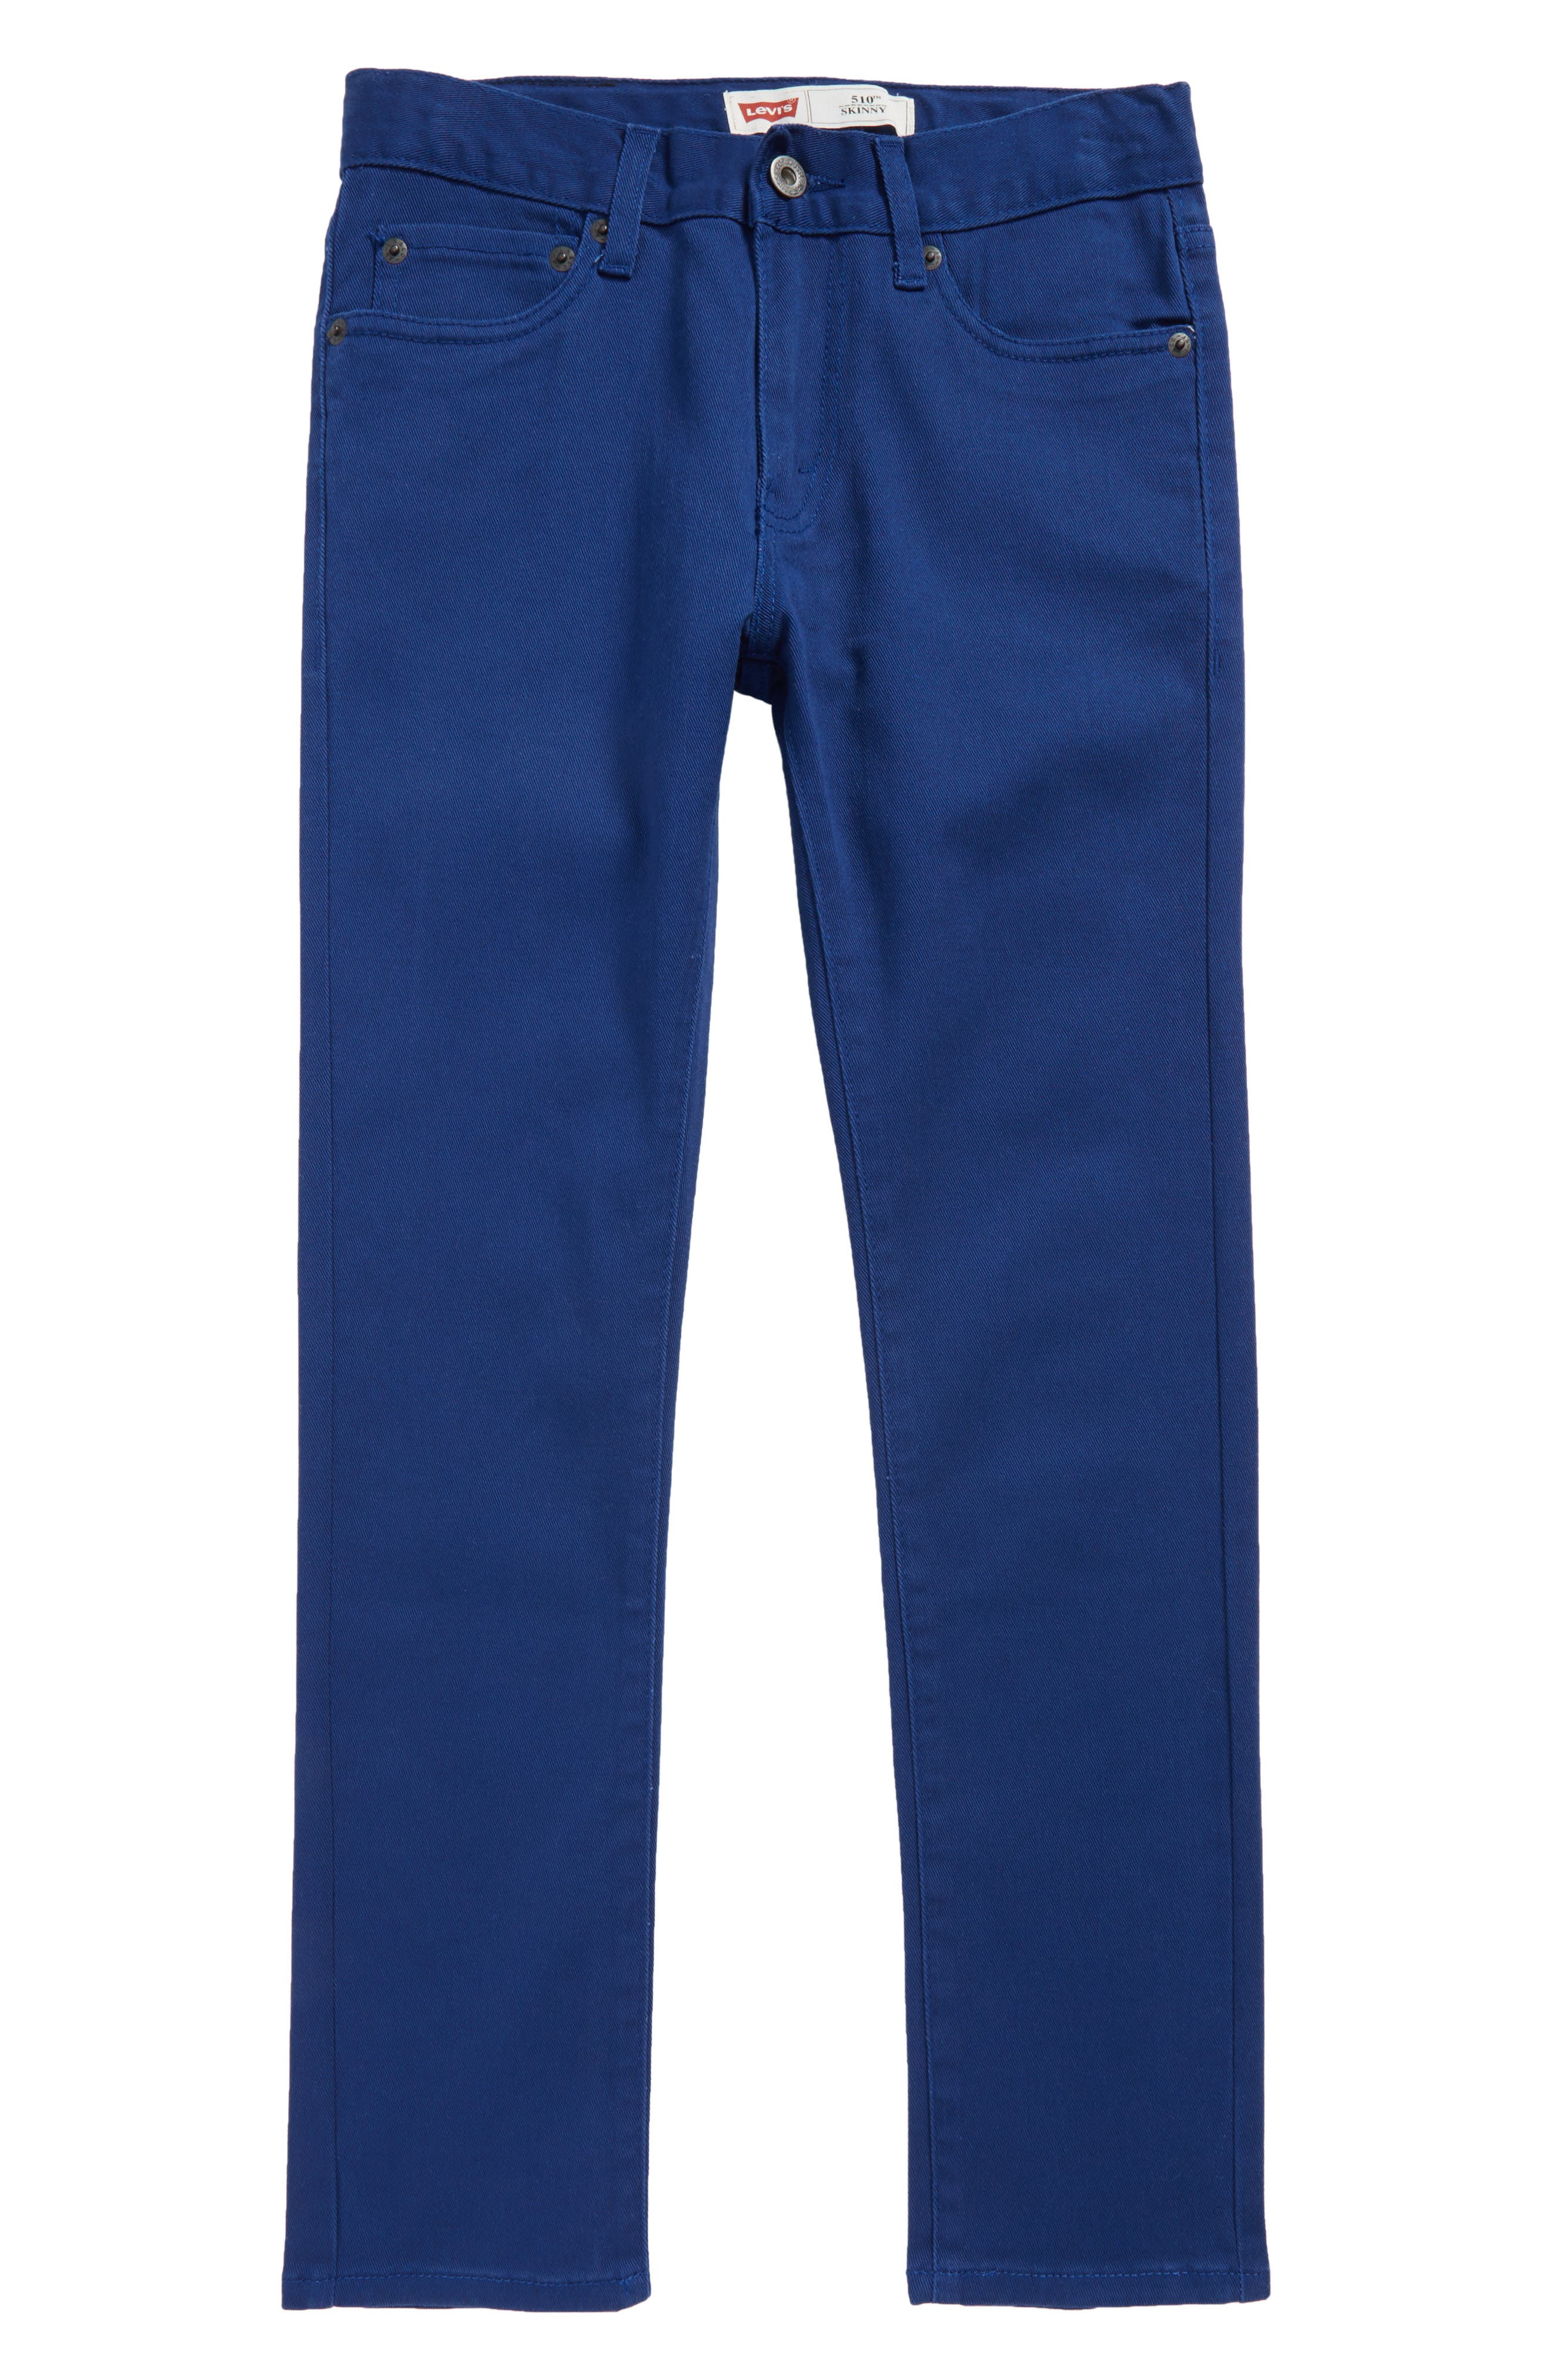 510<sup>™</sup> Skinny Fit Jeans,                             Main thumbnail 1, color,                             409